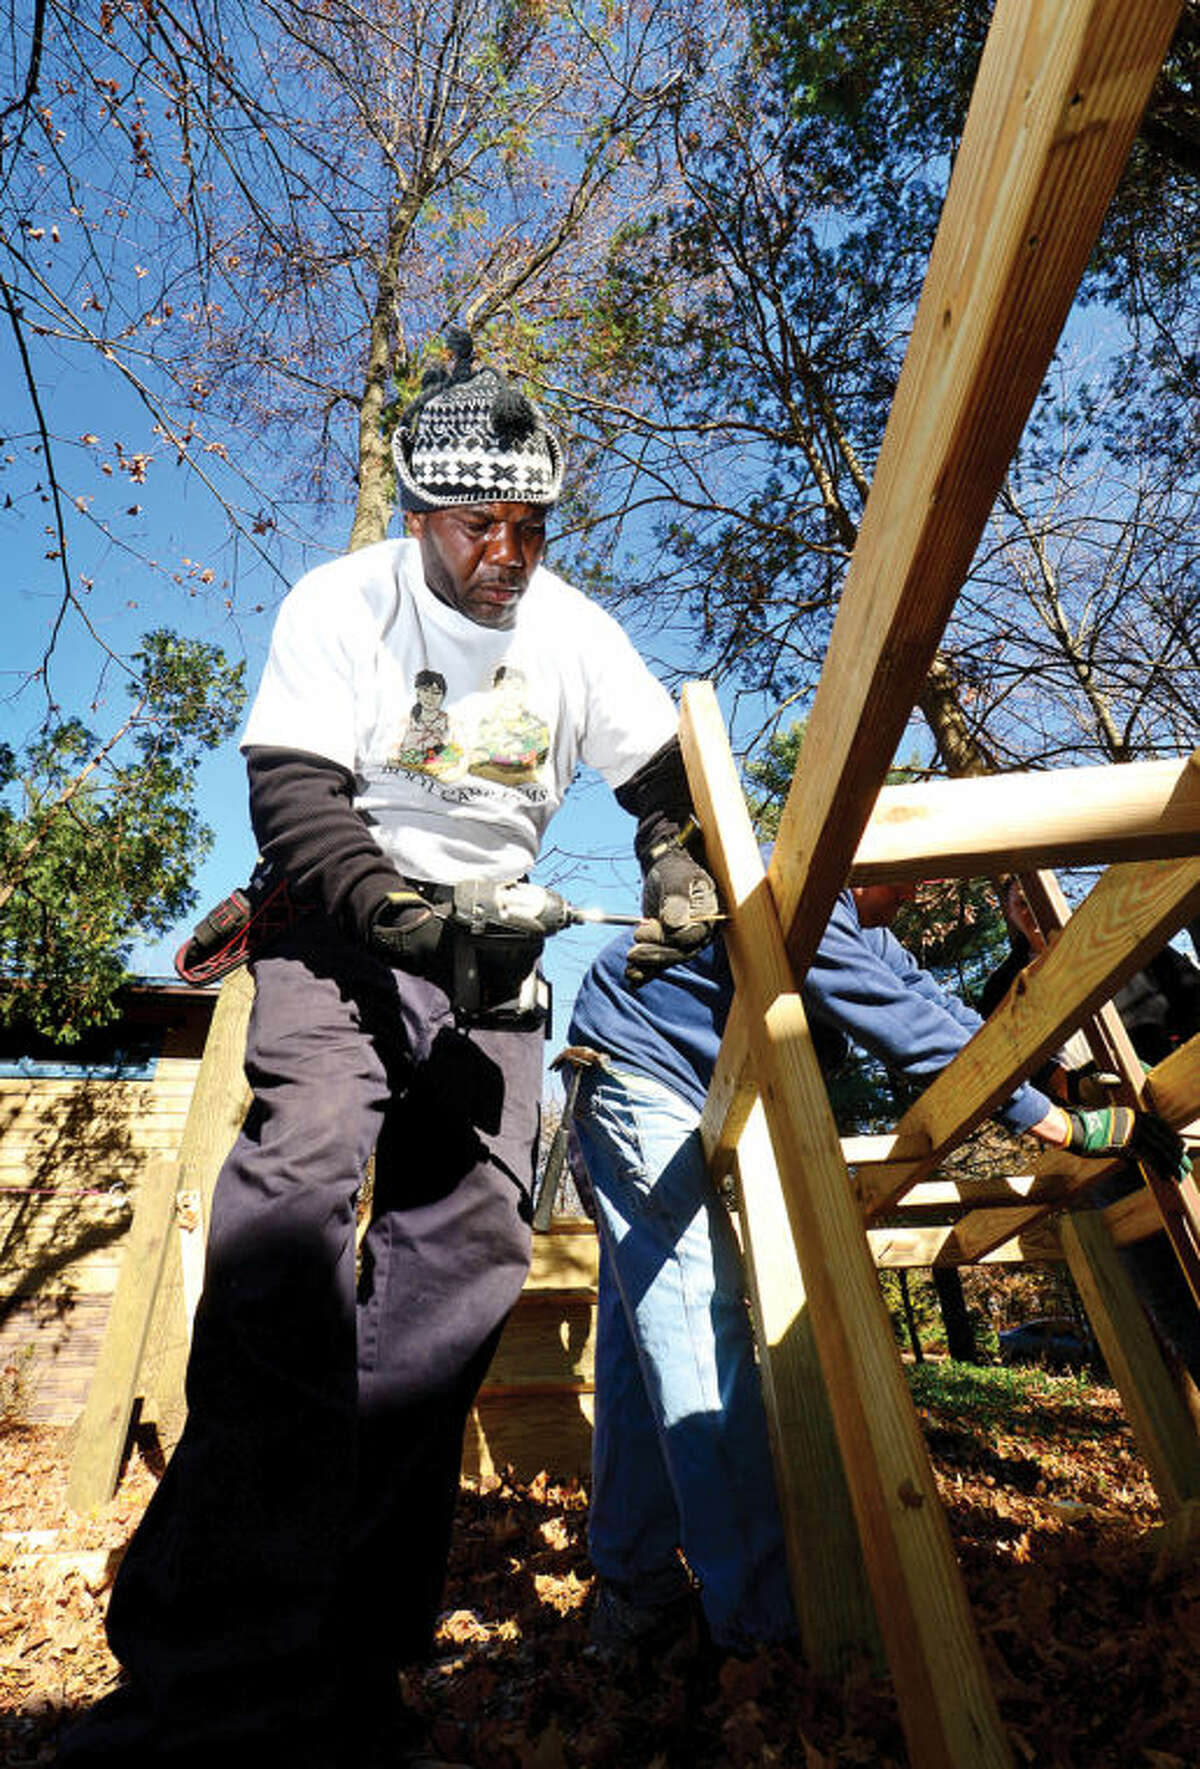 Hour photo / Erik Trautmann BB Williams of Boot Camp Farms, a veteran minded company, the Russell Phillips company and donations from PC Metals, help erect an ADA compliant handicap ramp at the home of Norwalk resident Michael Angione, a WW2 Veteran of Norwalk, Saturday.